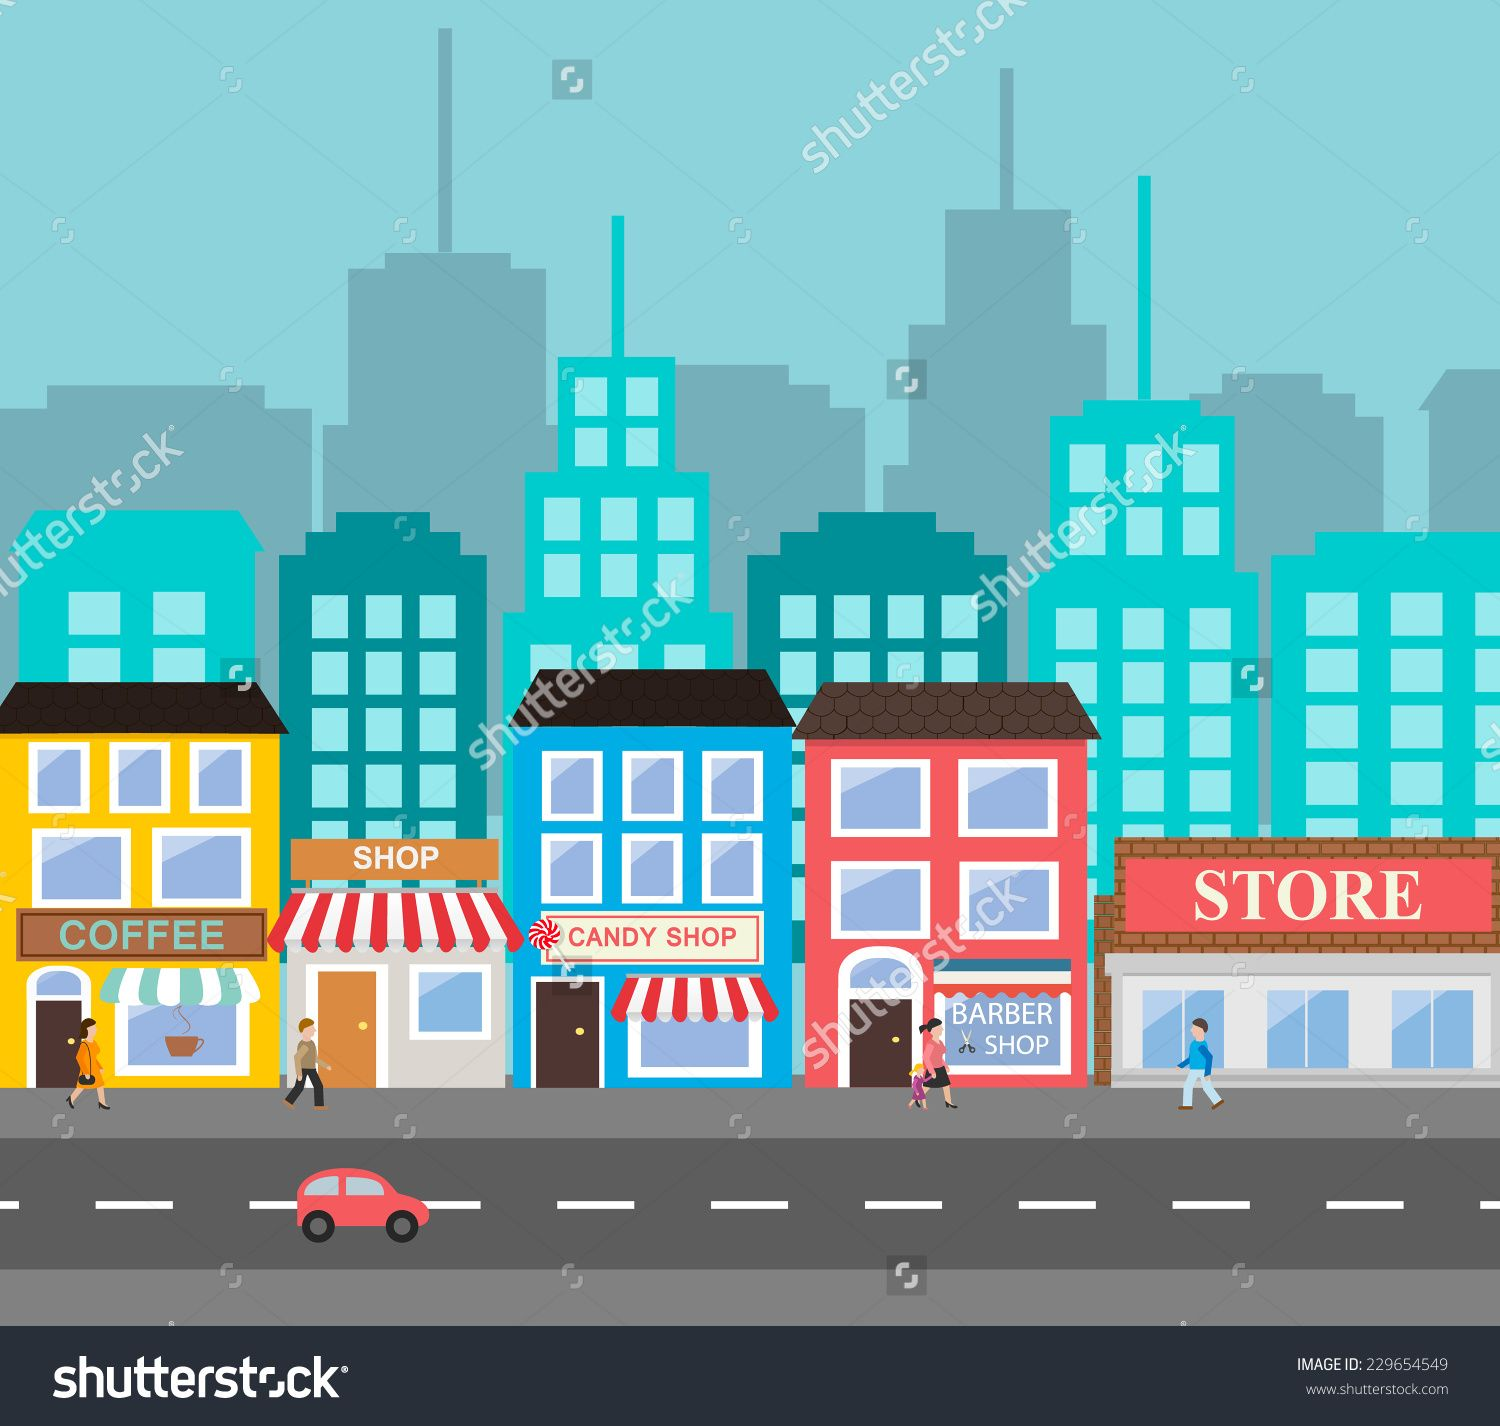 Small Town Urban Landscape In Flat Design Style Vector Illustration Includes Small Business Build Train Illustration Building Illustration Web Layout Design